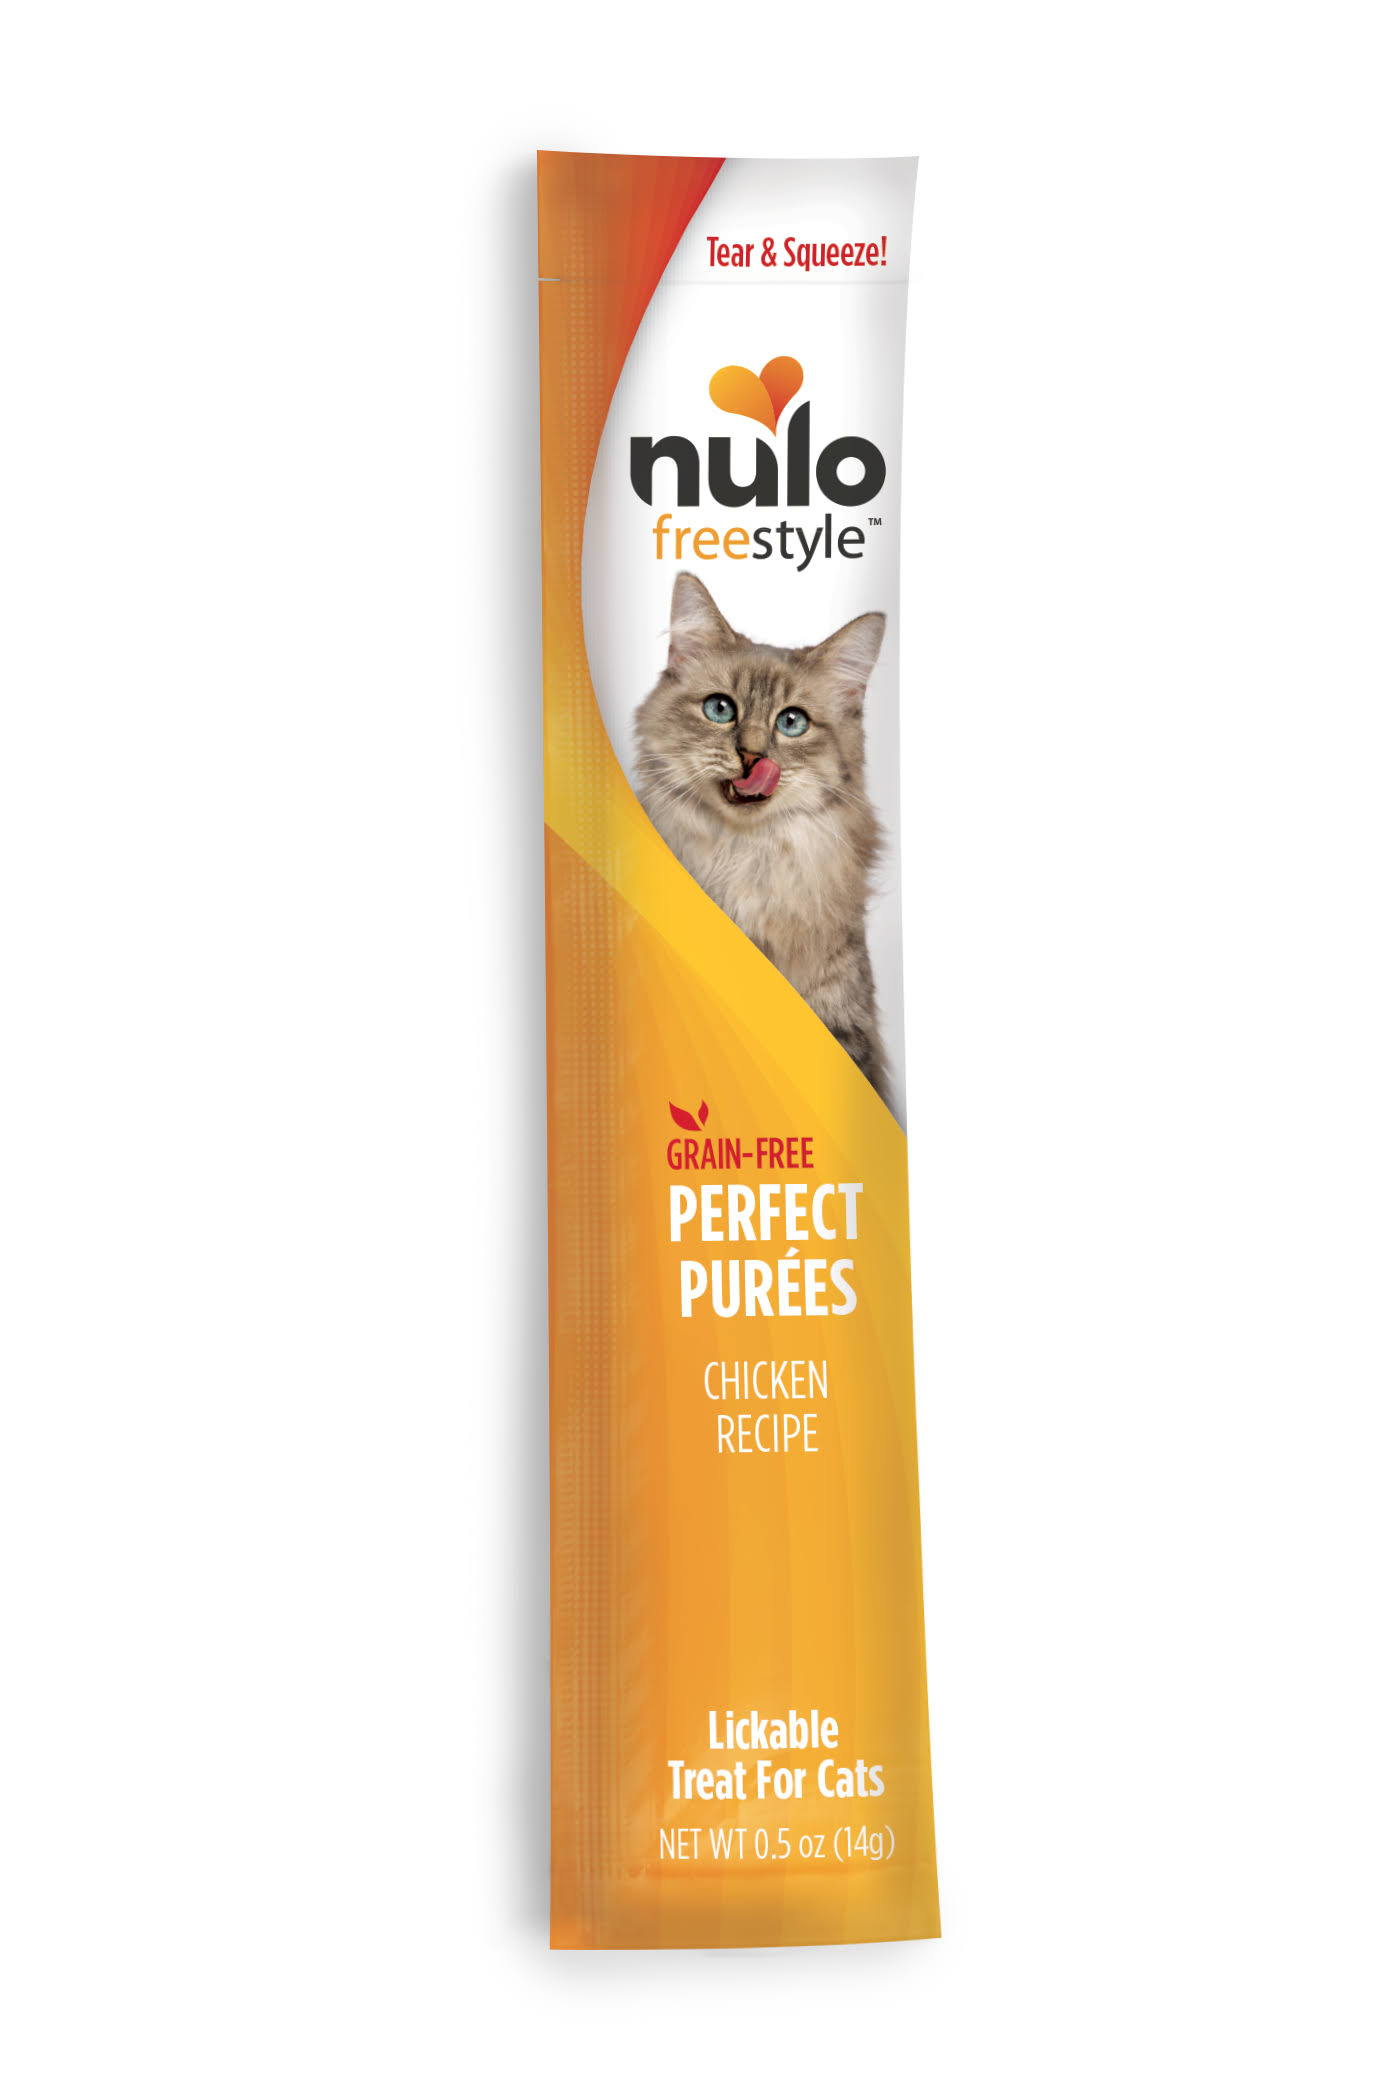 Nulo Freestyle Puree Grain-Free Cat Treat .5oz Chicken